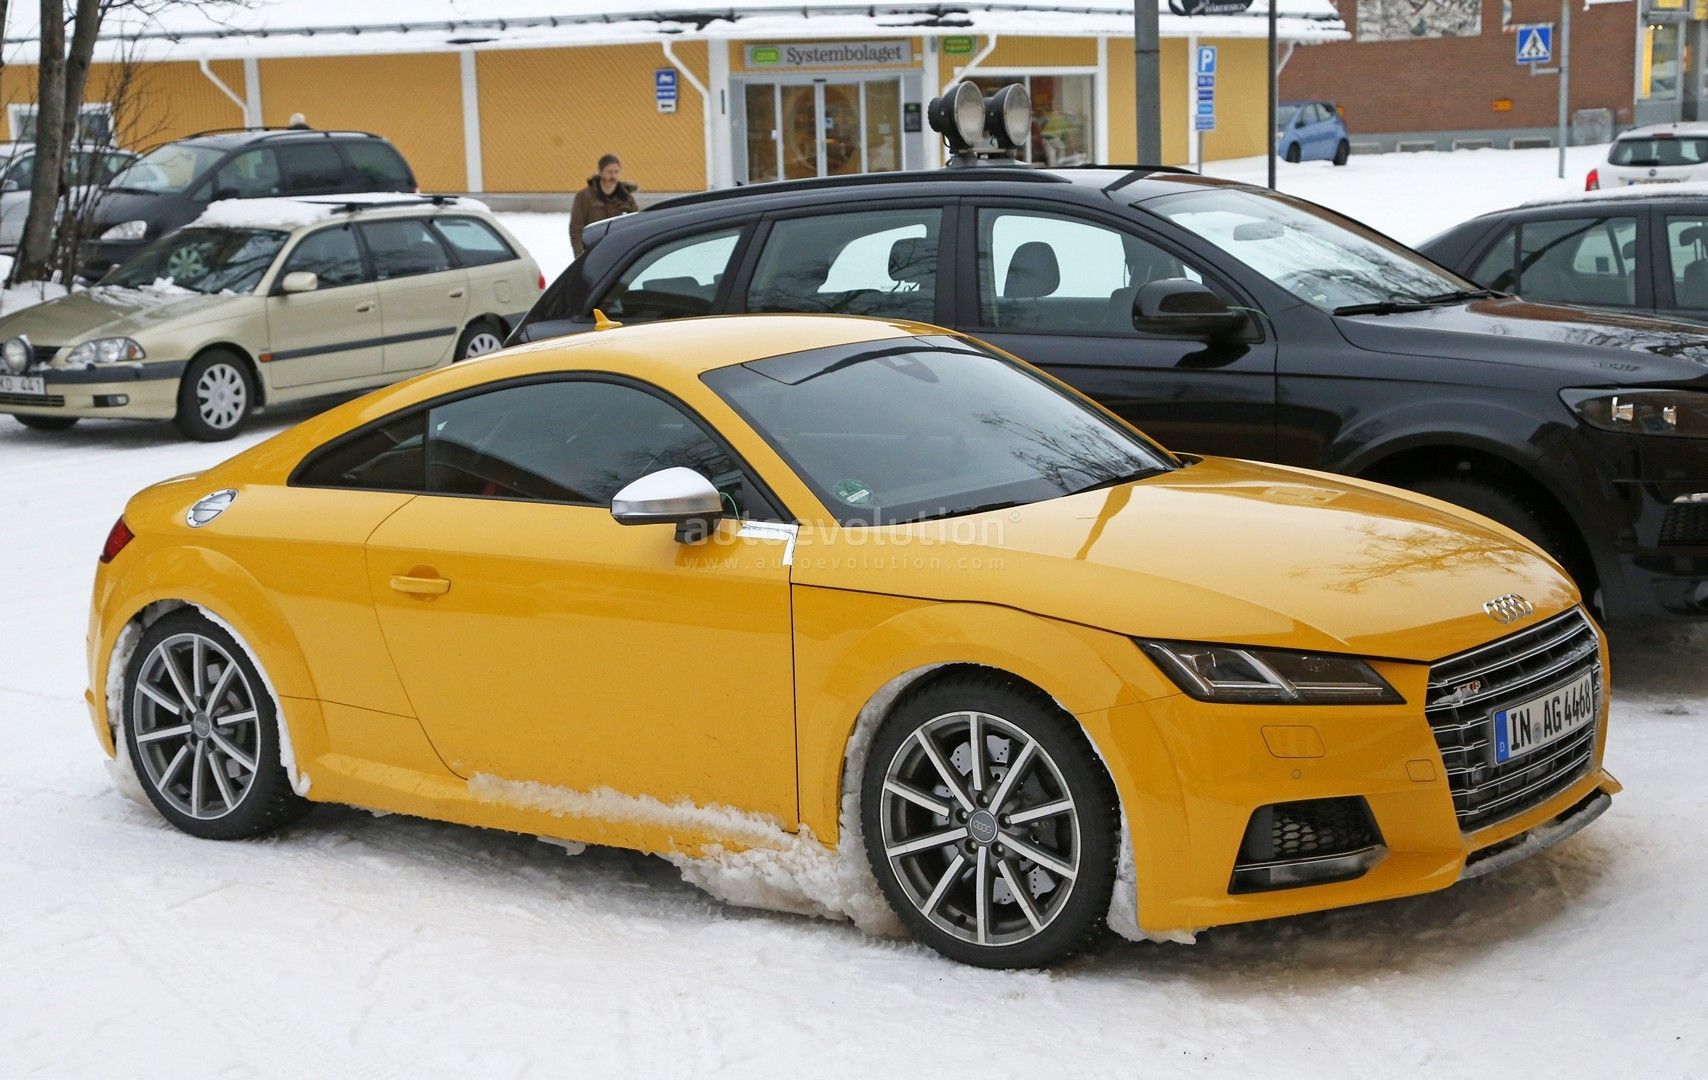 2017 Audi TT RS Spy Photos Reveal Manual Gearbox for the First Time ...